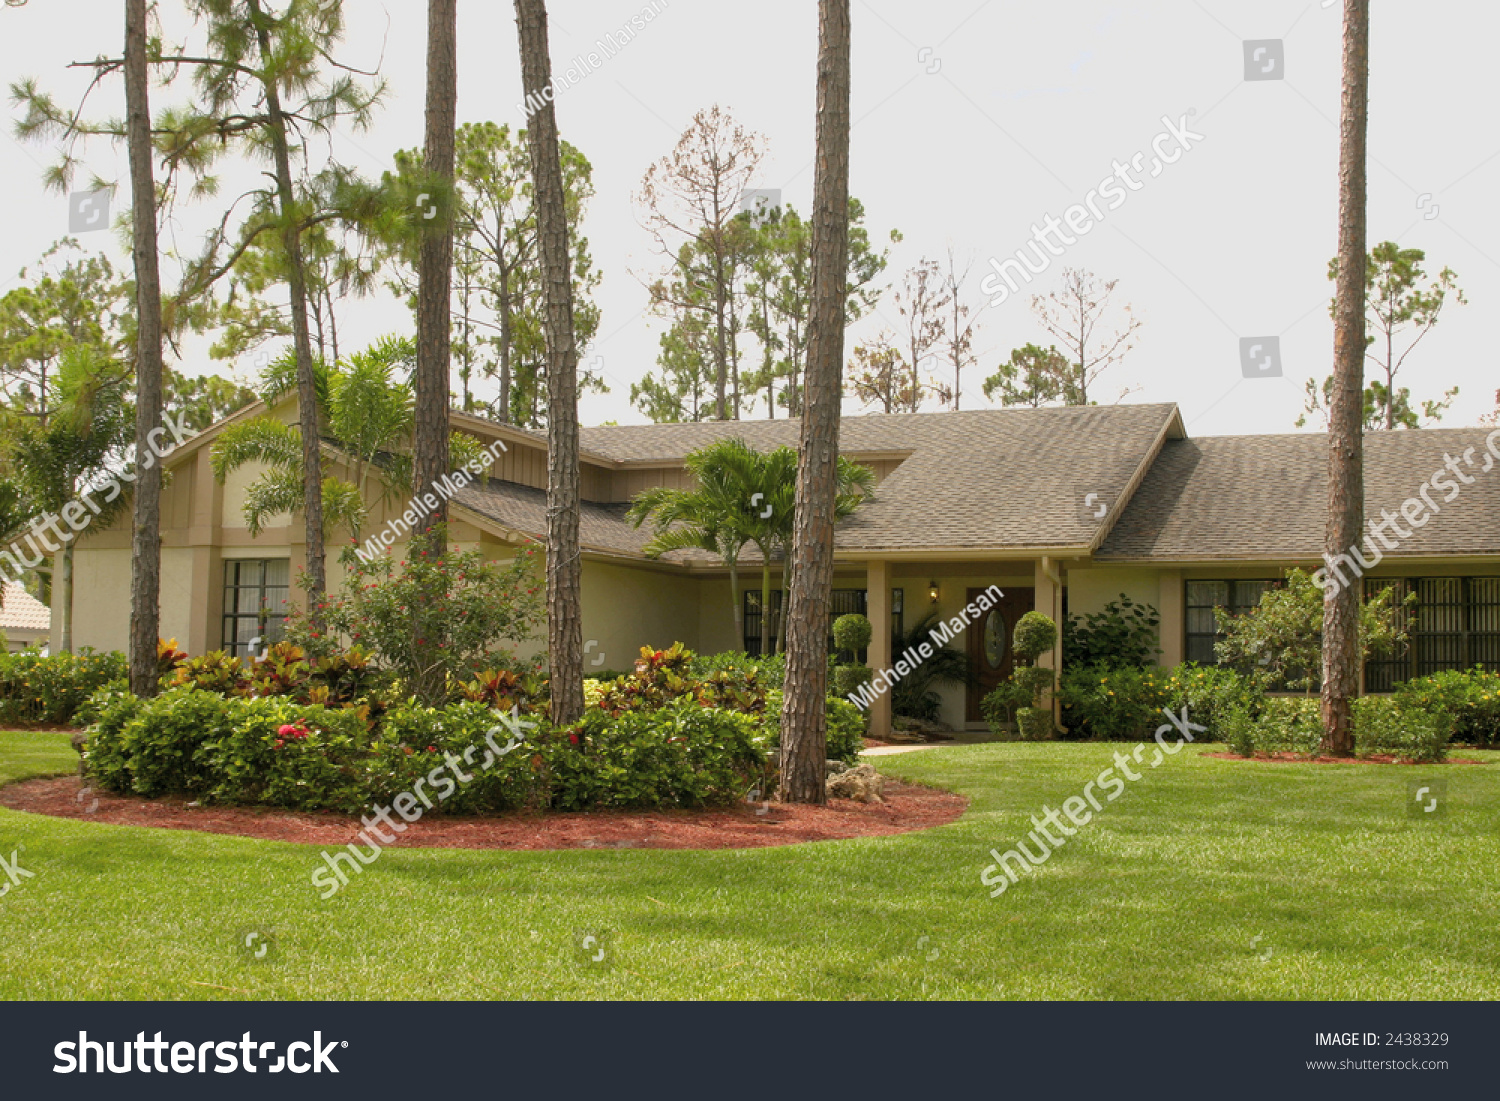 Southern ranch home stock photo 2438329 shutterstock for Southern home and ranch